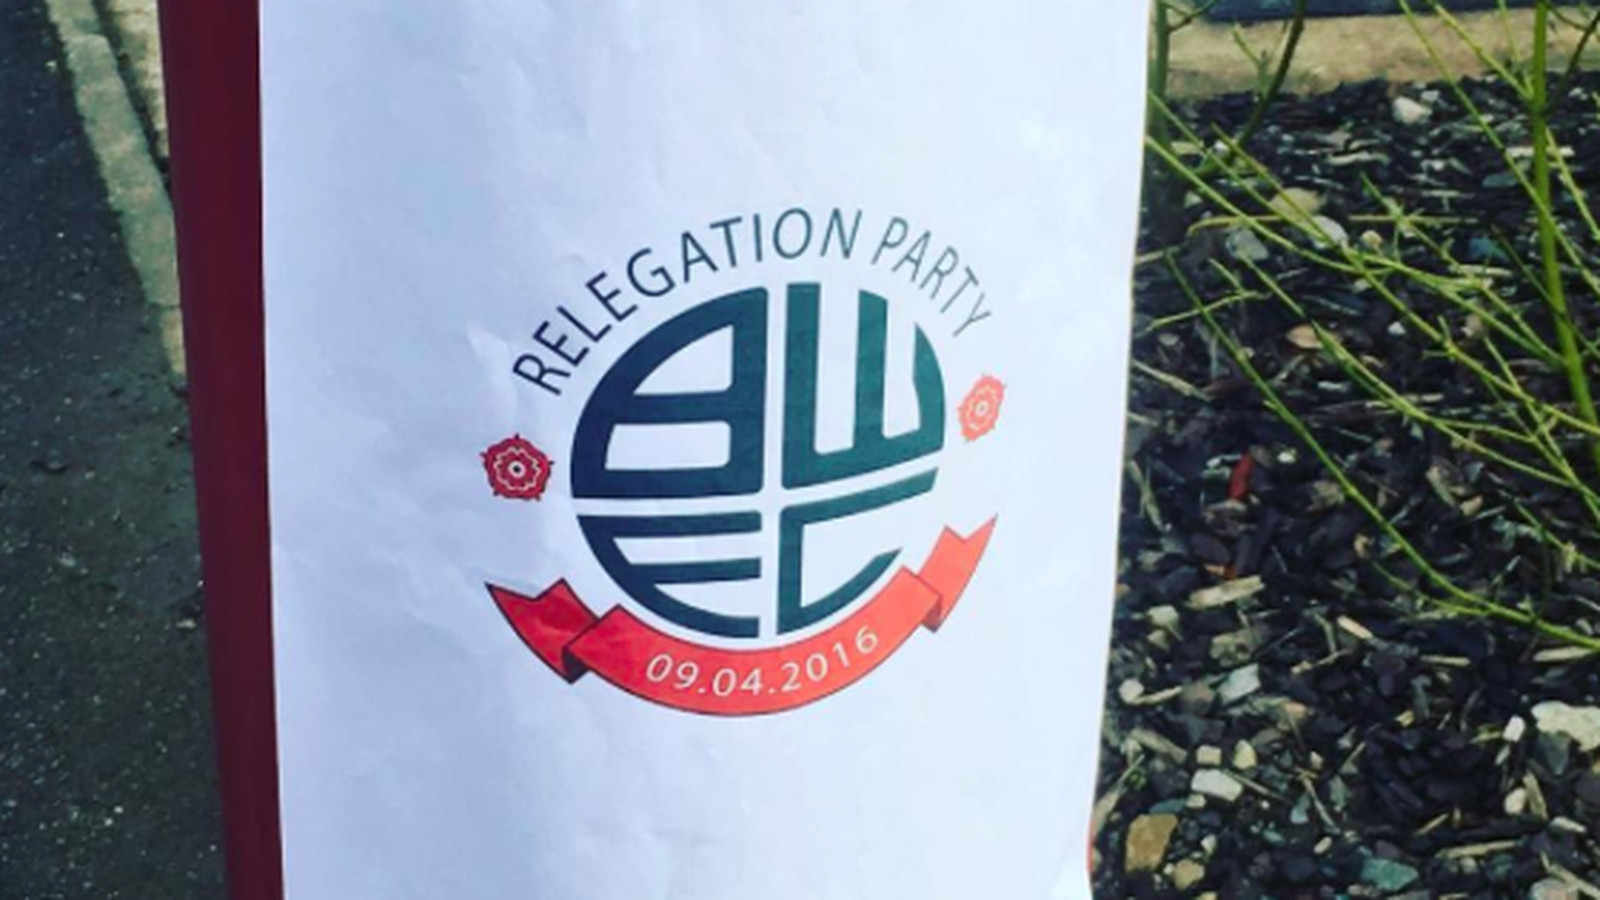 Screen_shot_2016-04-11_at_14.45.46.0.0